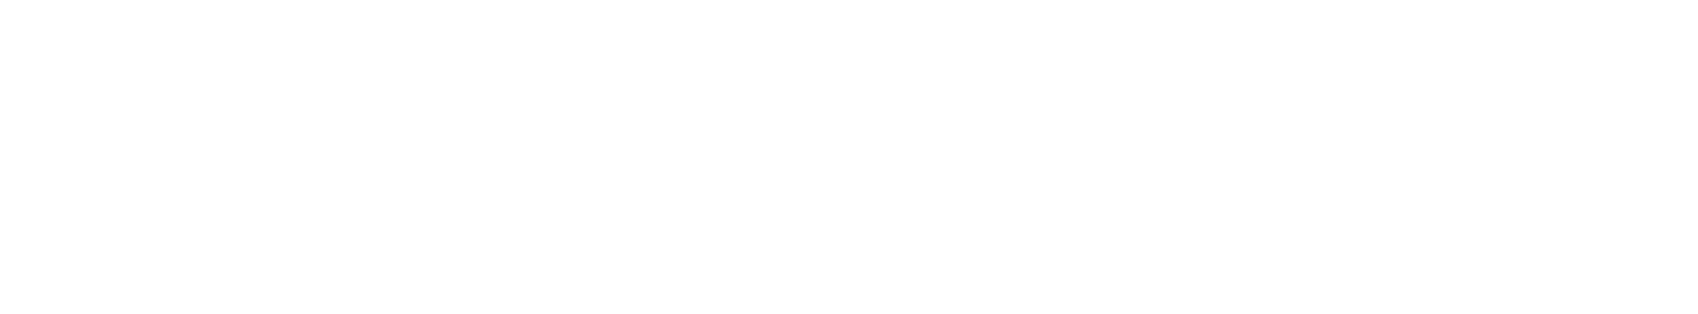 Aptus Capital Advisors